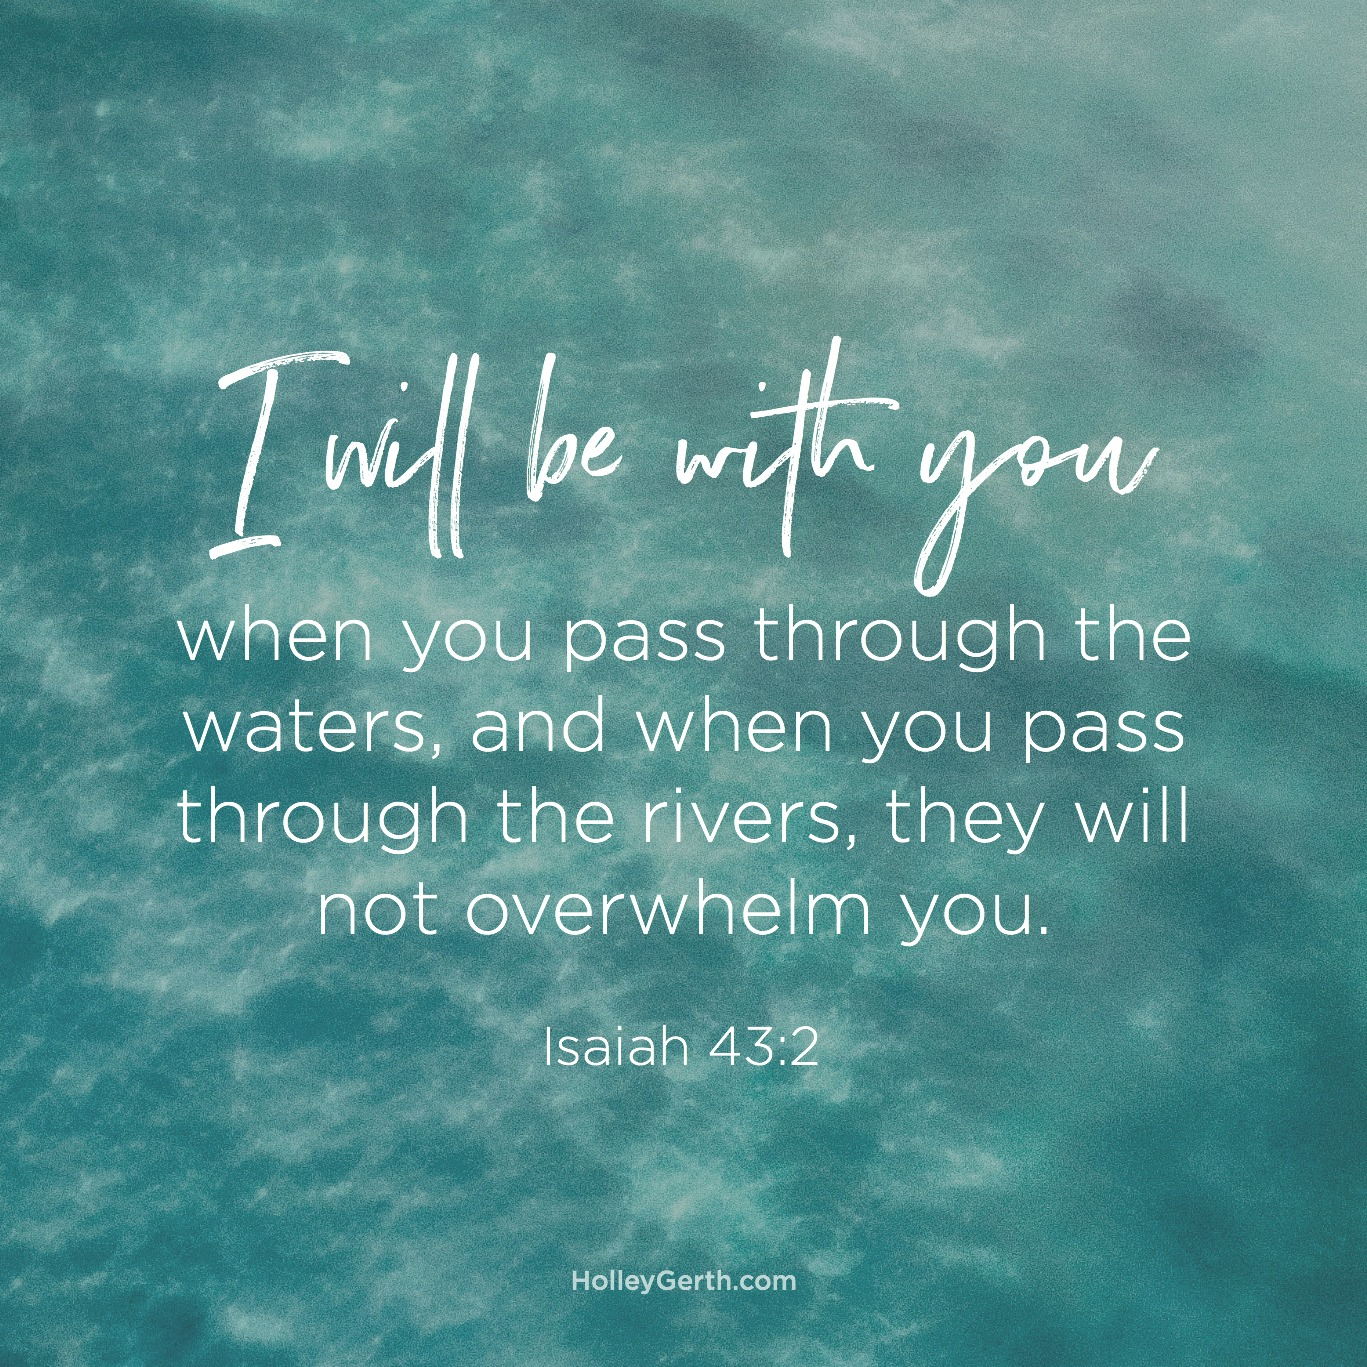 I will be with you... Isaiah 43:2